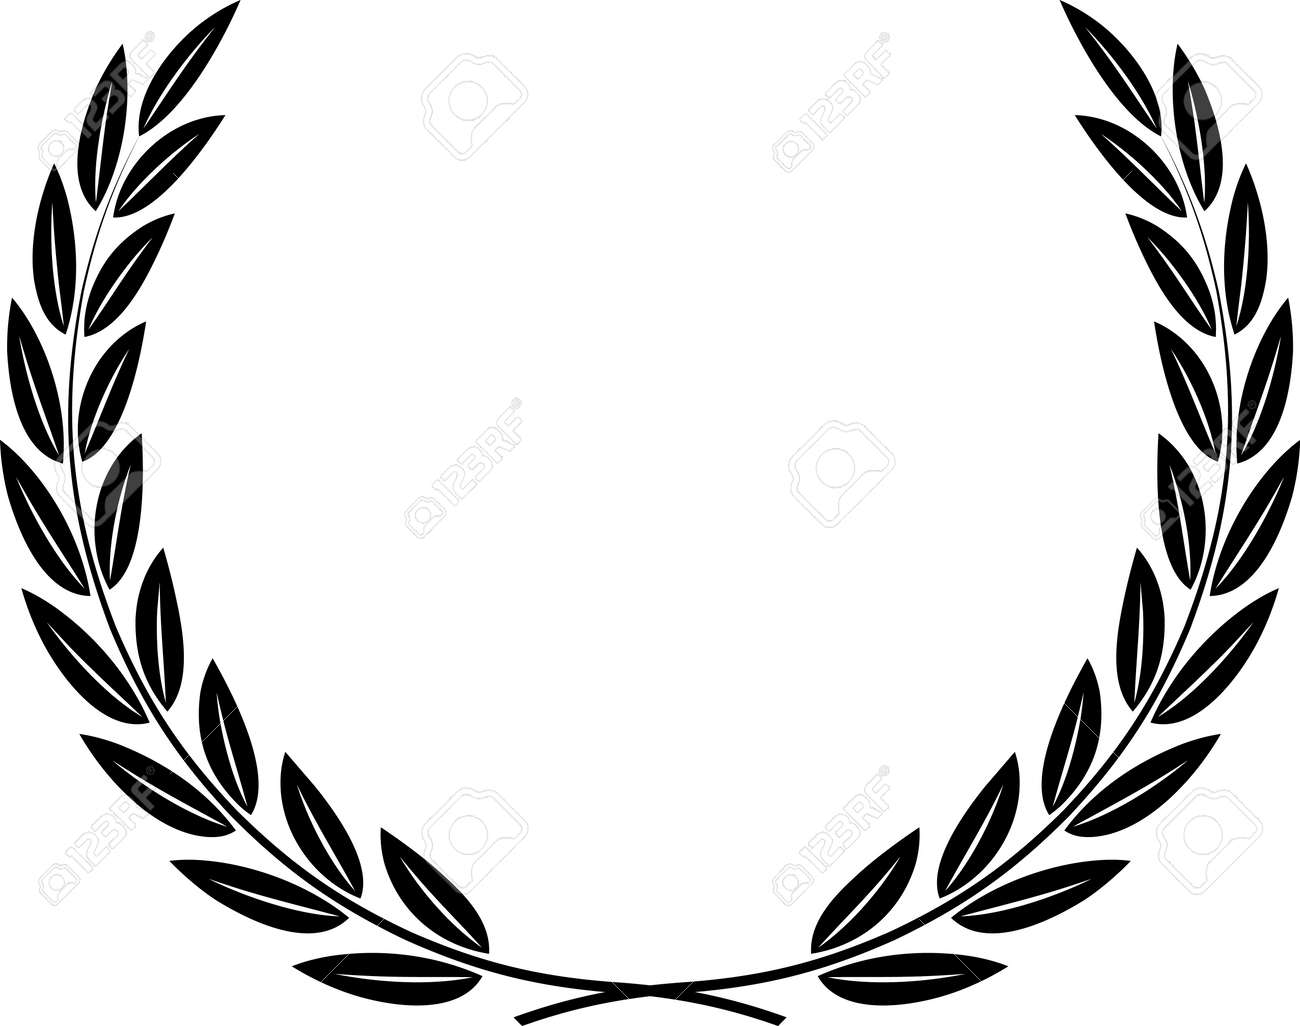 laurel wreath vector royalty free cliparts vectors and stock rh 123rf com laurel wreath vector brush photoshop laurel wreath vector brush photoshop